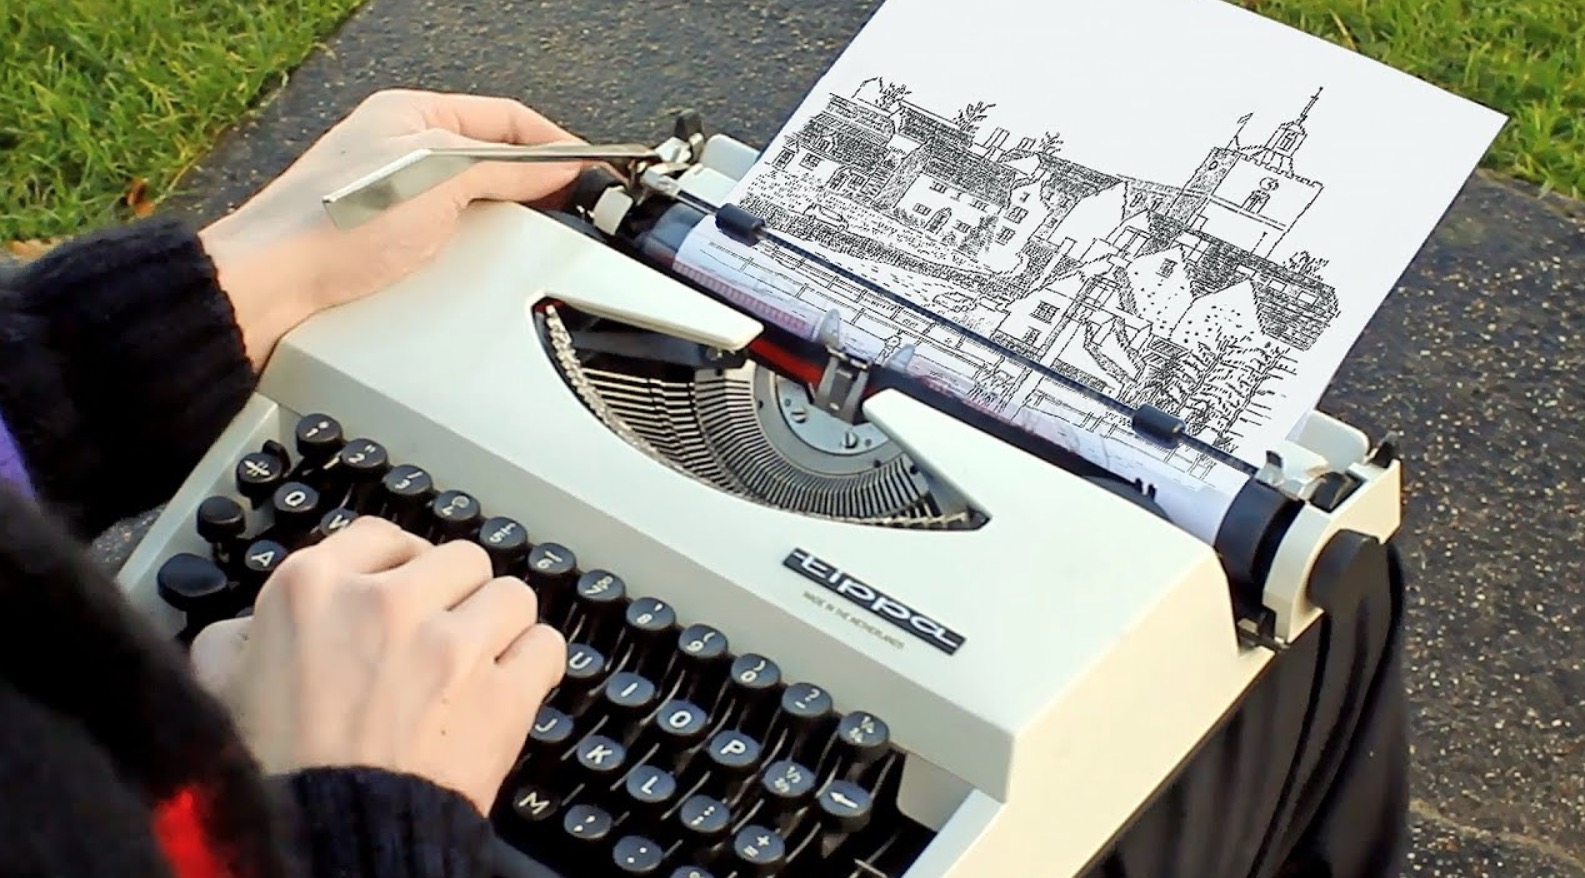 Watch This Artist Use A Typewriter To Beautifully Illustrate An English Countryside